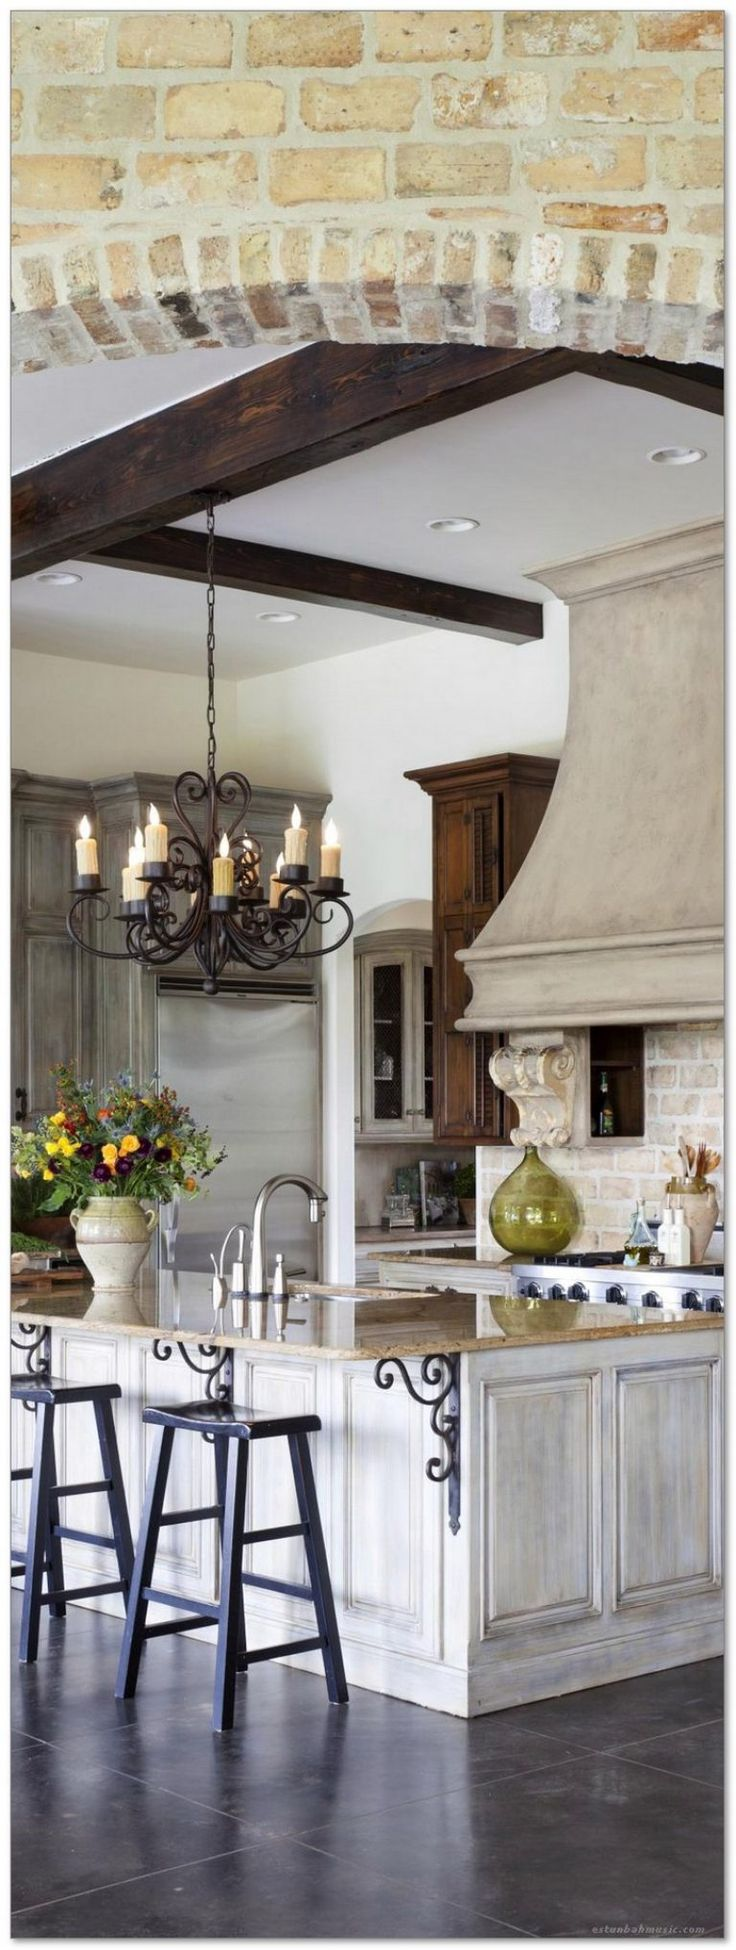 French Country Kitchen Ideas Best 25 French Country Kitchens Ideas On Pinterest  French